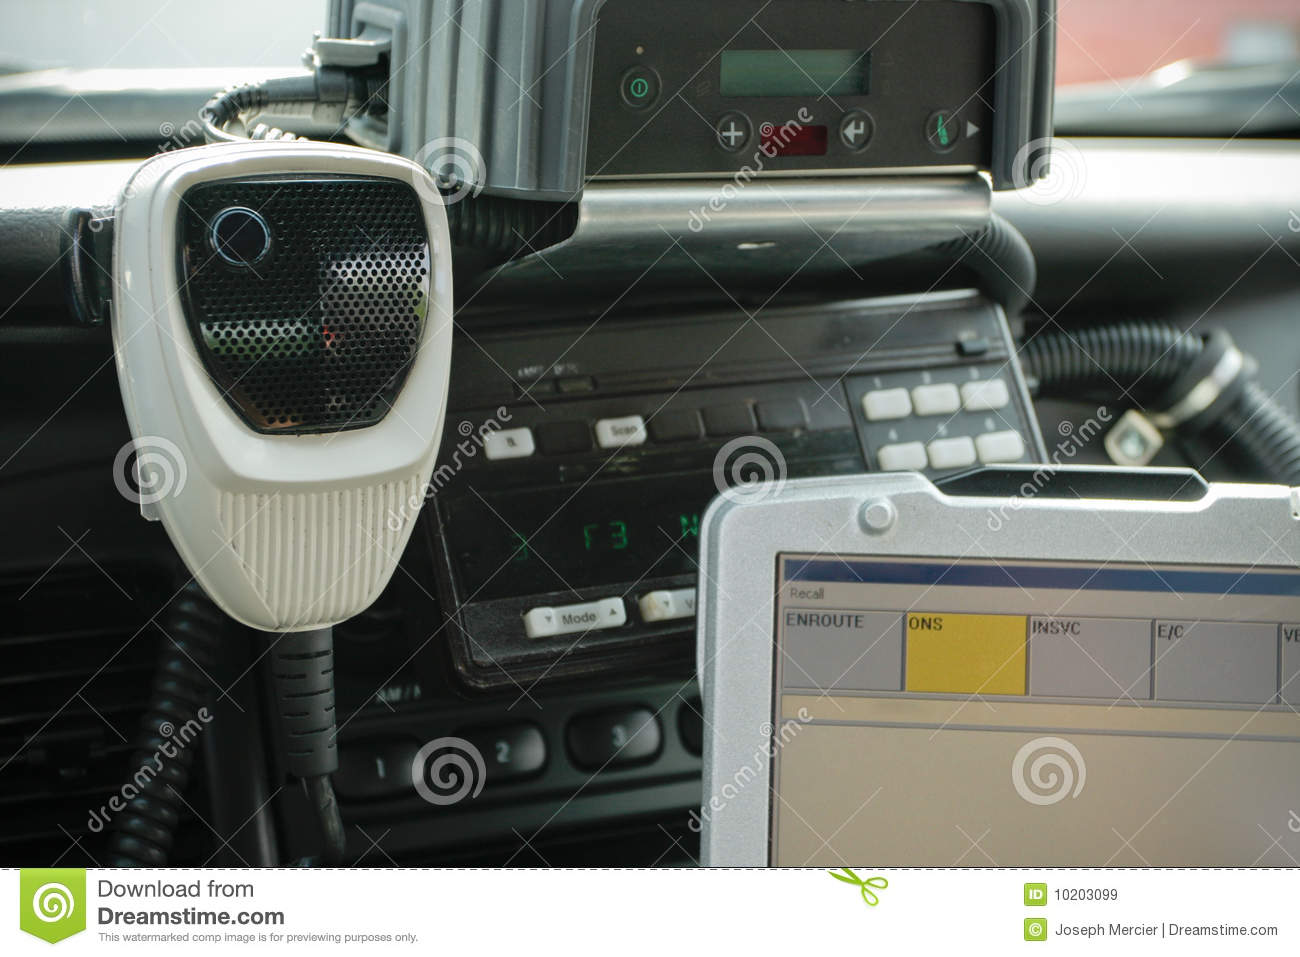 Police Radio Mic >> Police Radio Mic In Car Royalty Free Stock Images - Image: 10203099